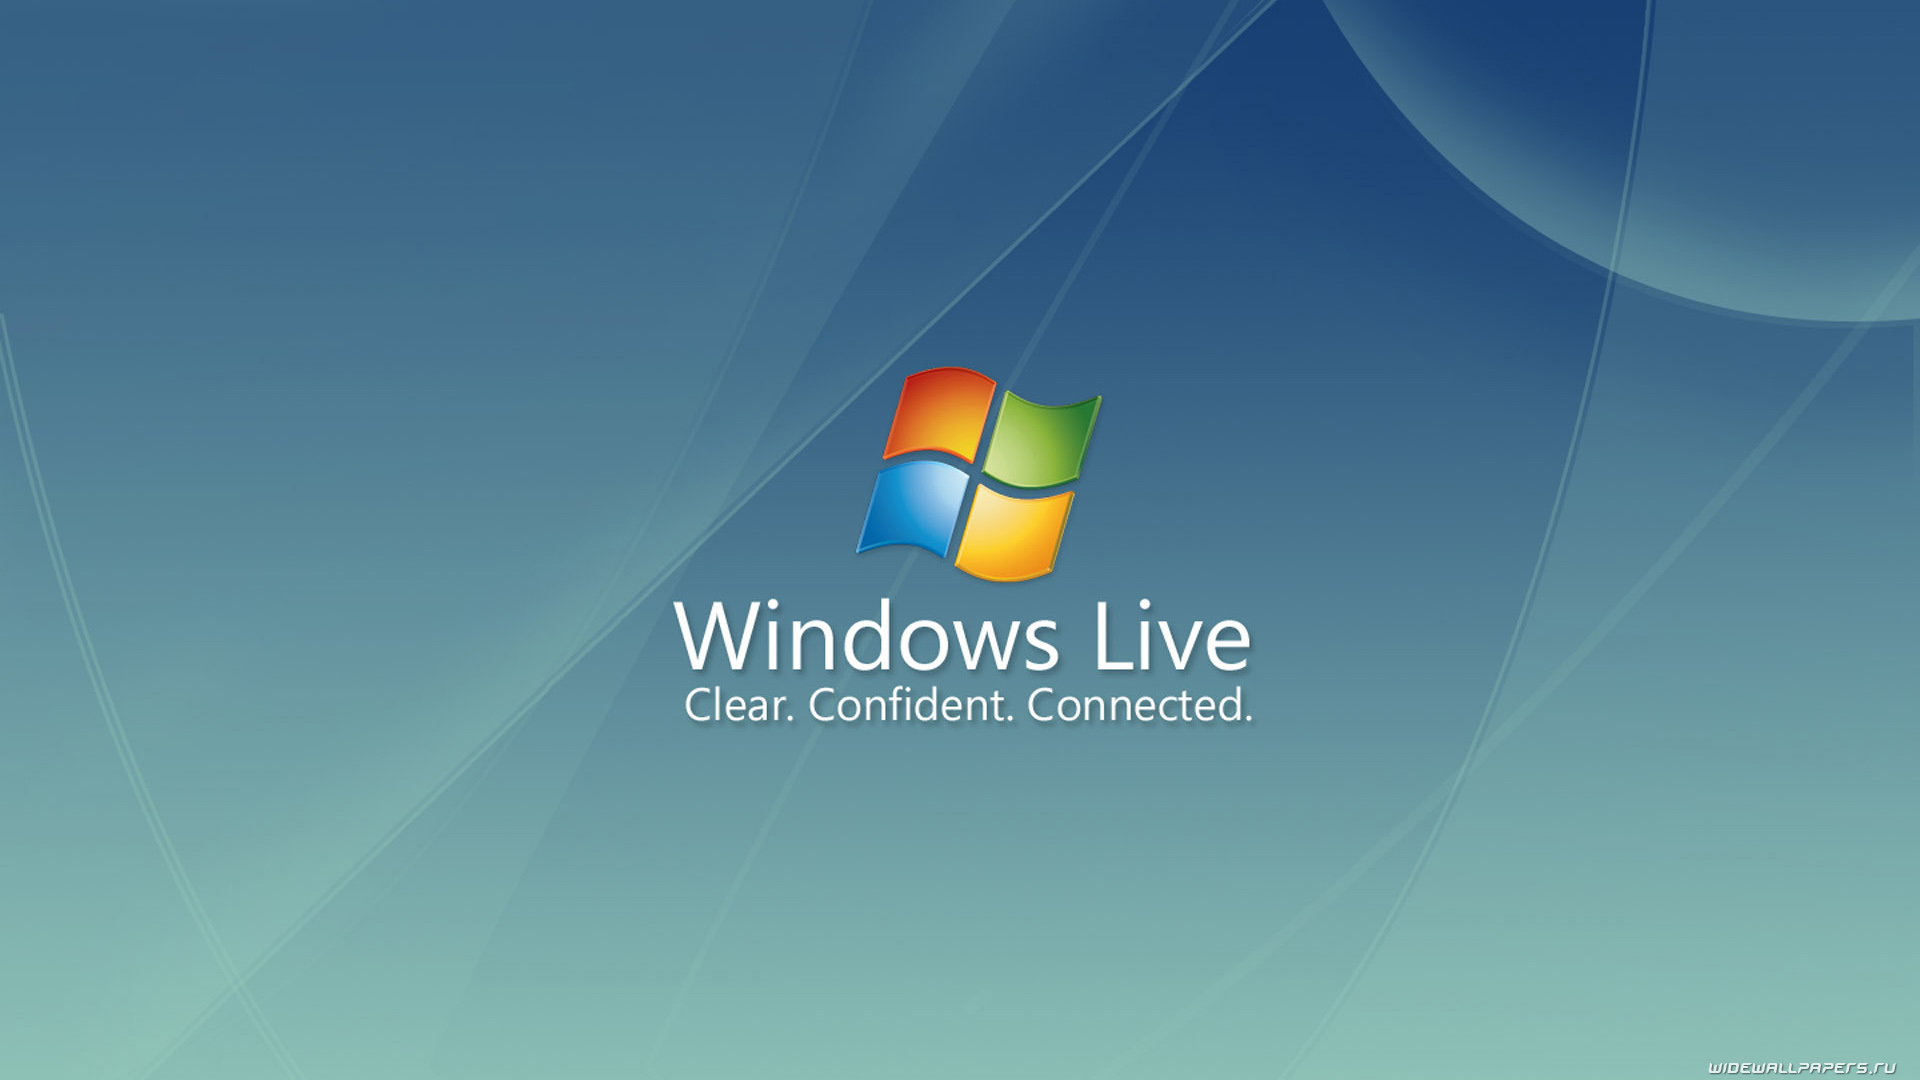 Windows Live Wallpapers HD Wallpaper of Windows   hdwallpaper2013com 1920x1080